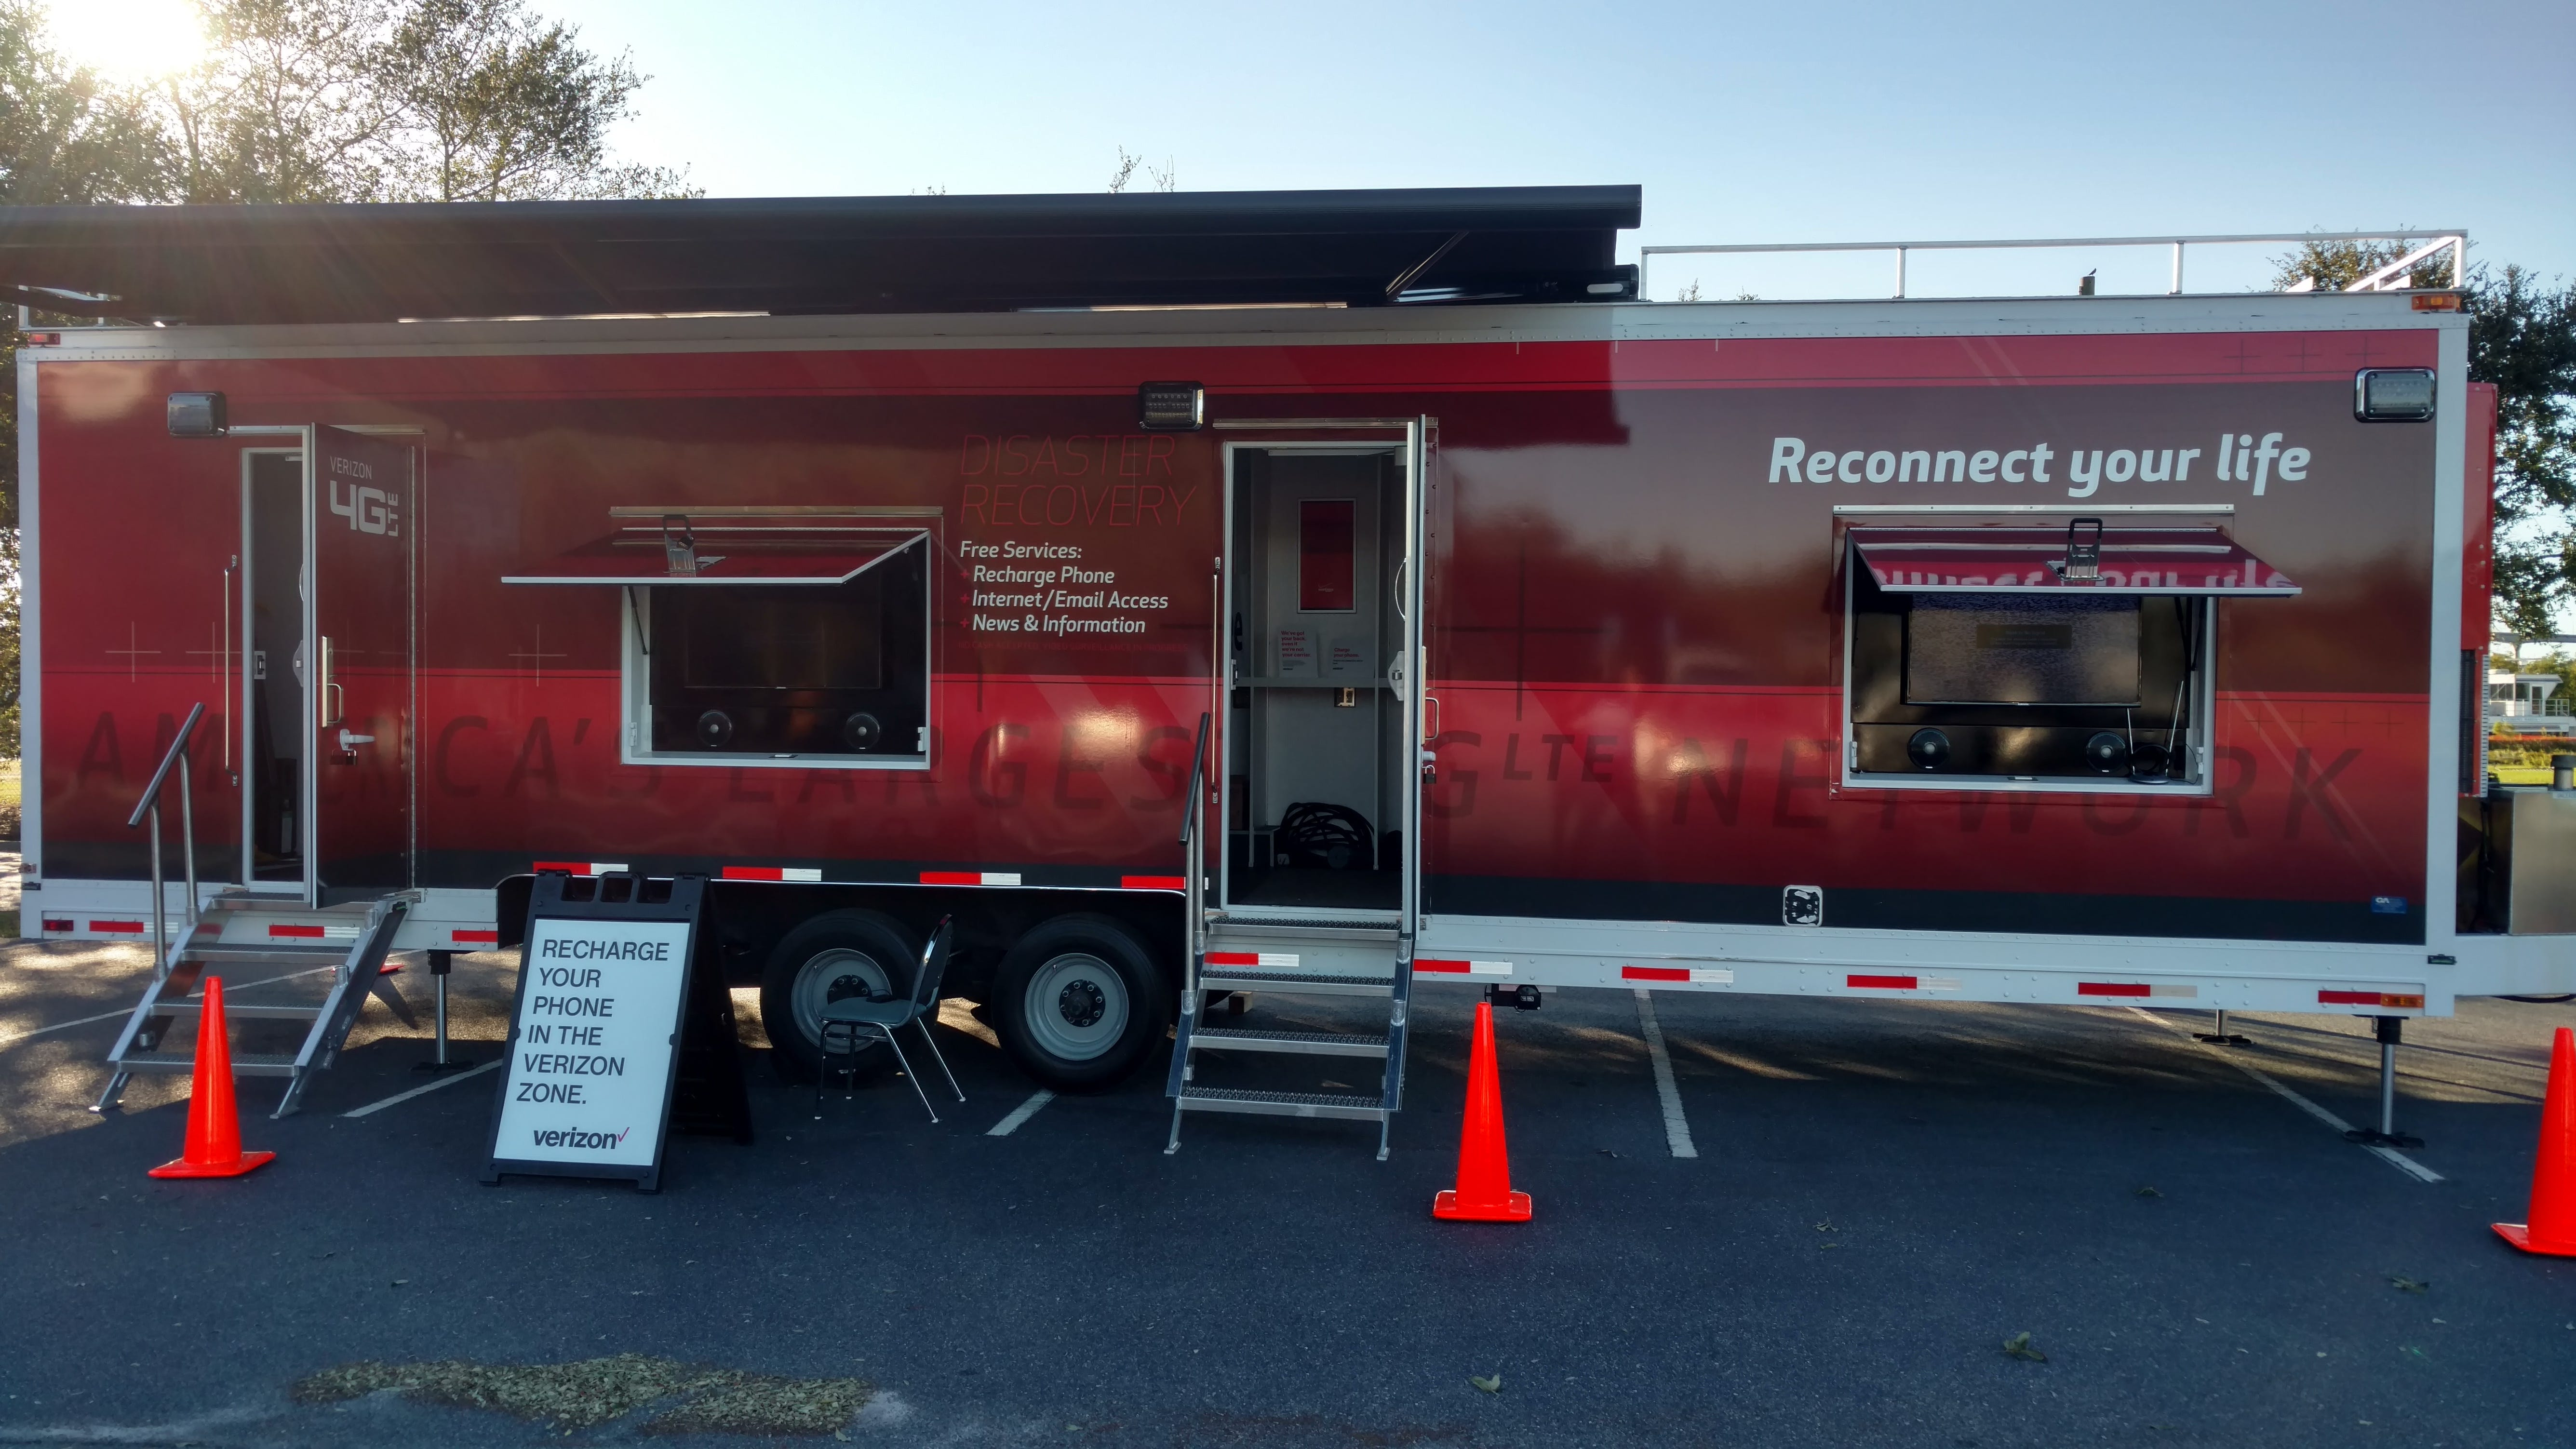 Verizon deploys WIreless Emergency Command Centers in the aftermath of disasters to help first responders and residents.